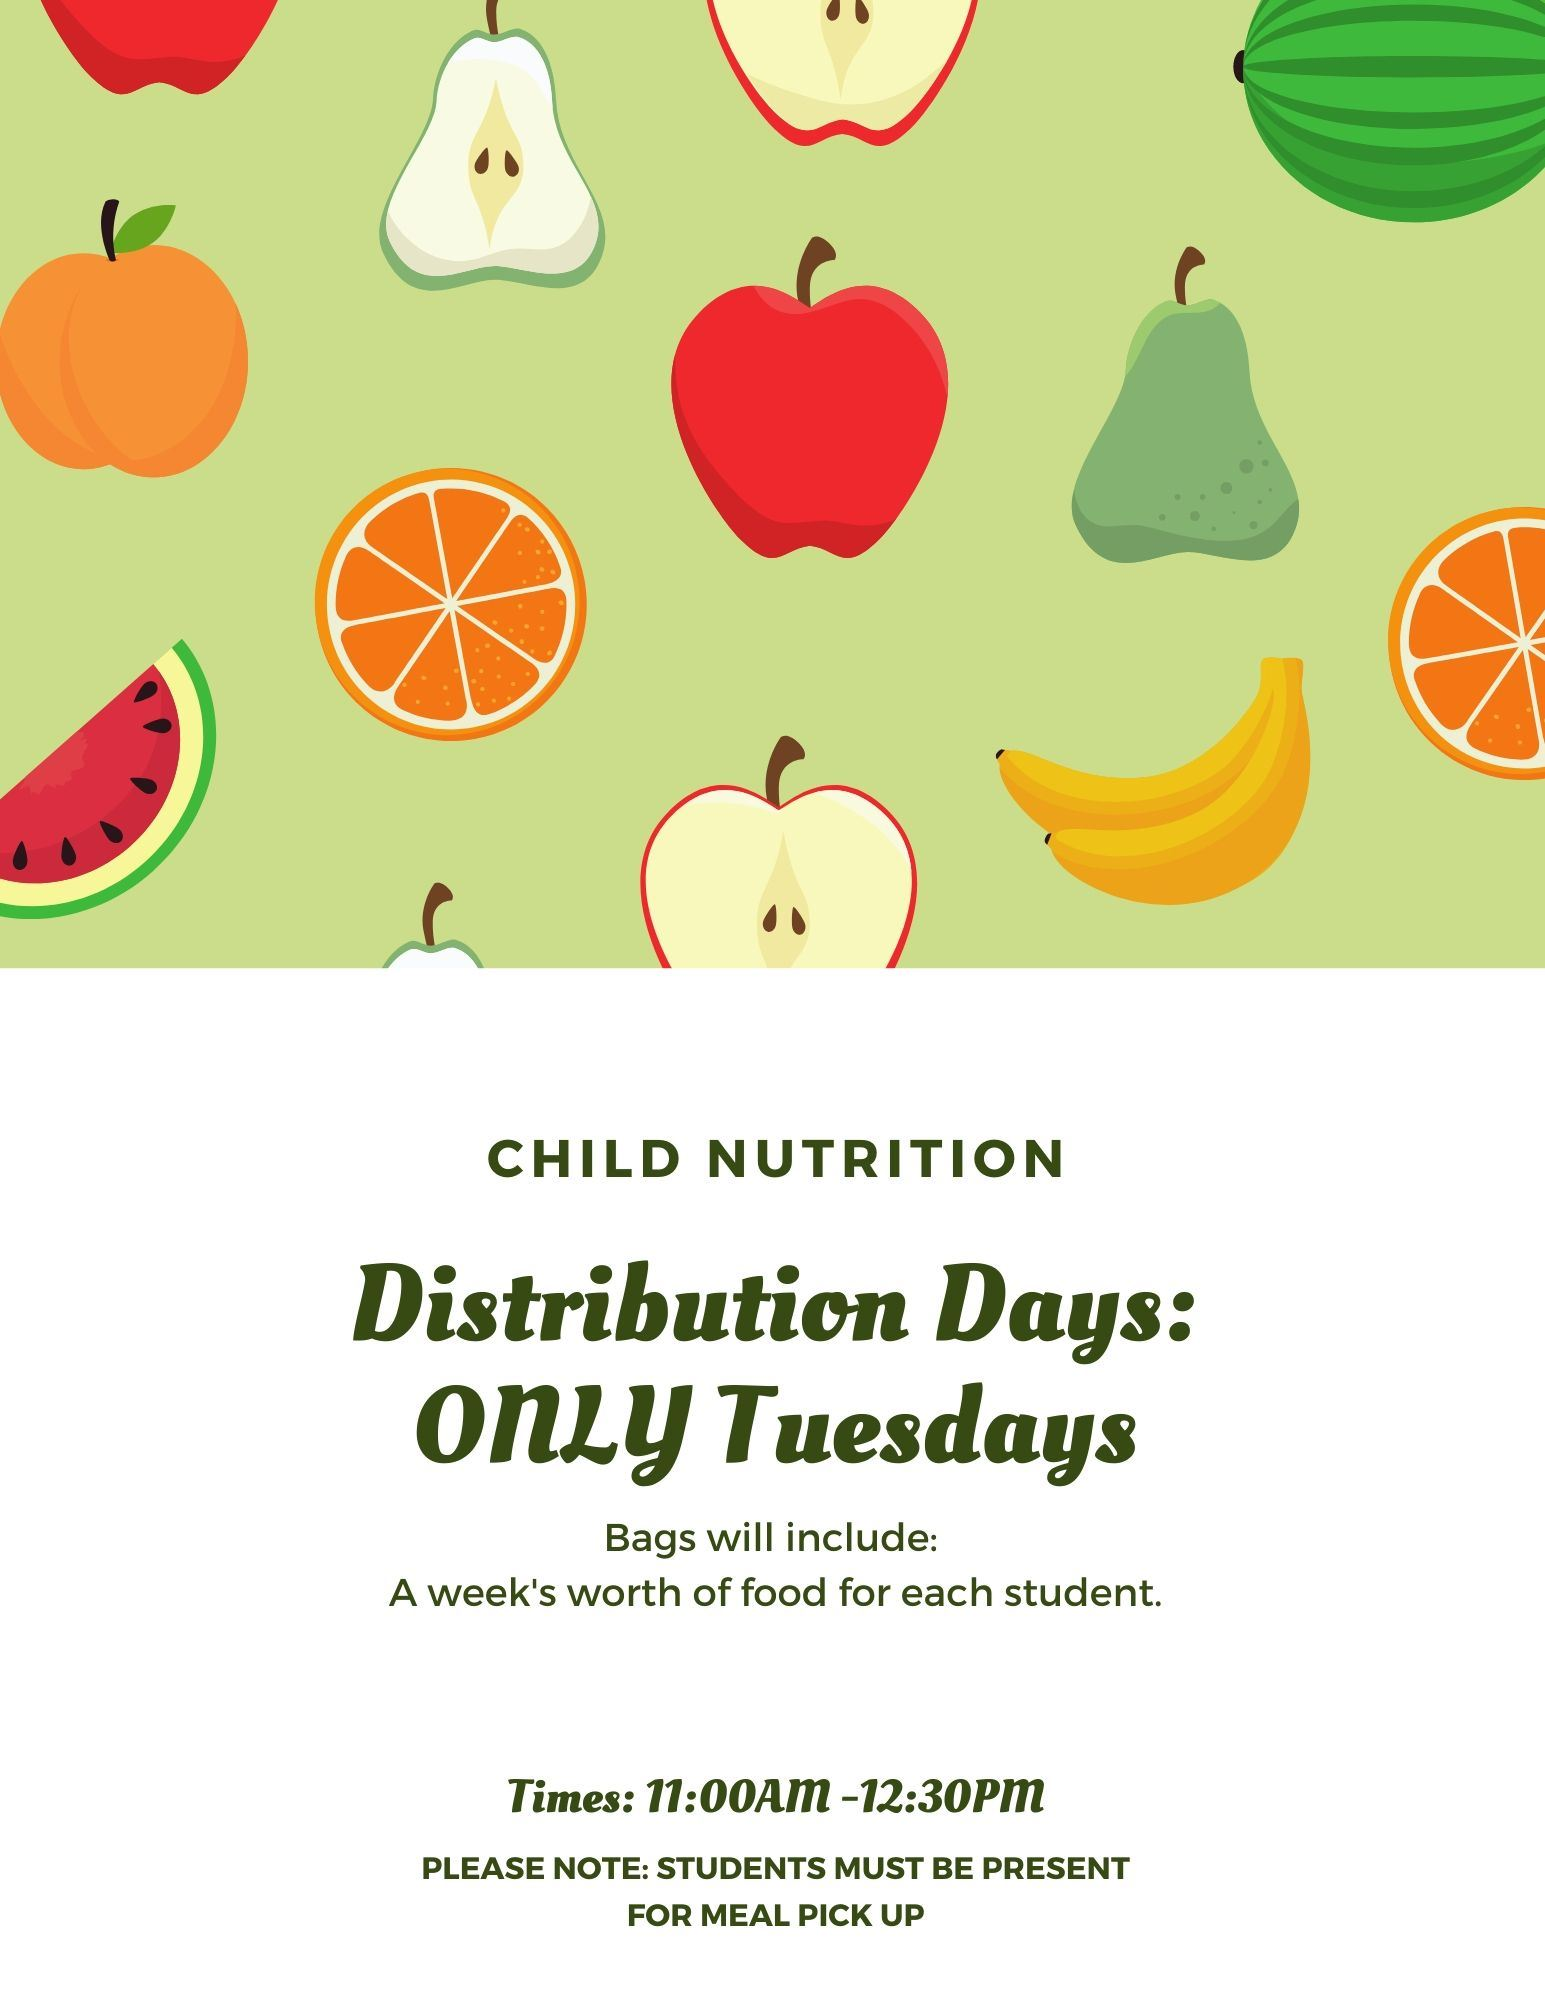 Child Nutrition: EFFECTIVE Monday, March 30, 2020